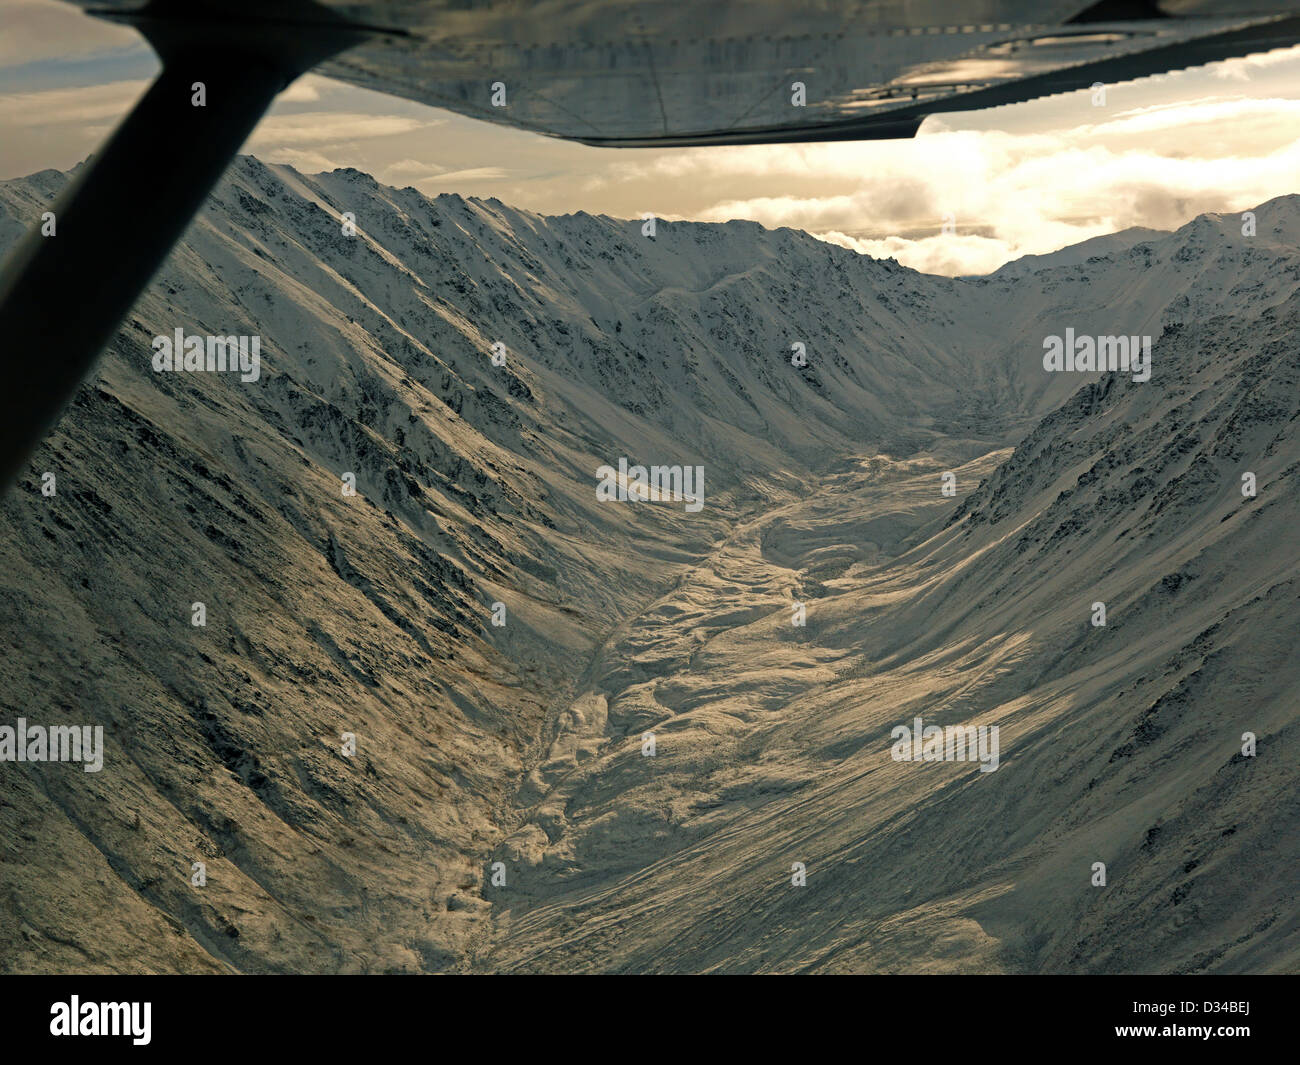 Light dusting of the mountain tops in the Talkeetna Mountains - Stock Image